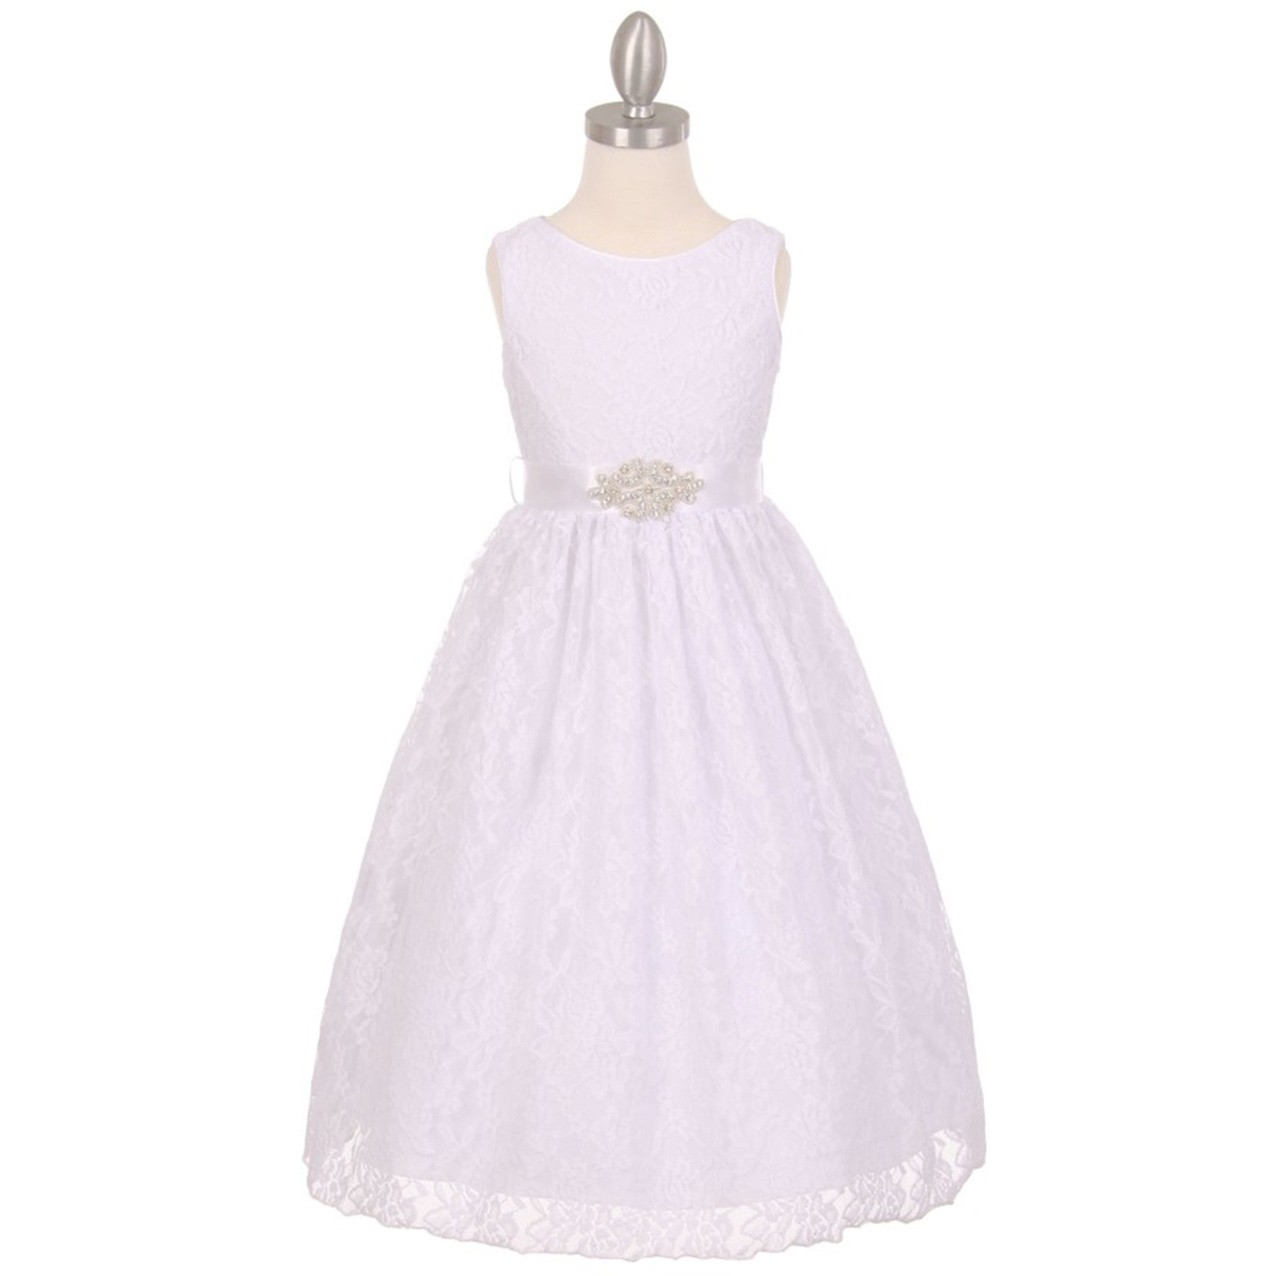 New Arrival White Lace Flower Girl Dresses with Rhinestone